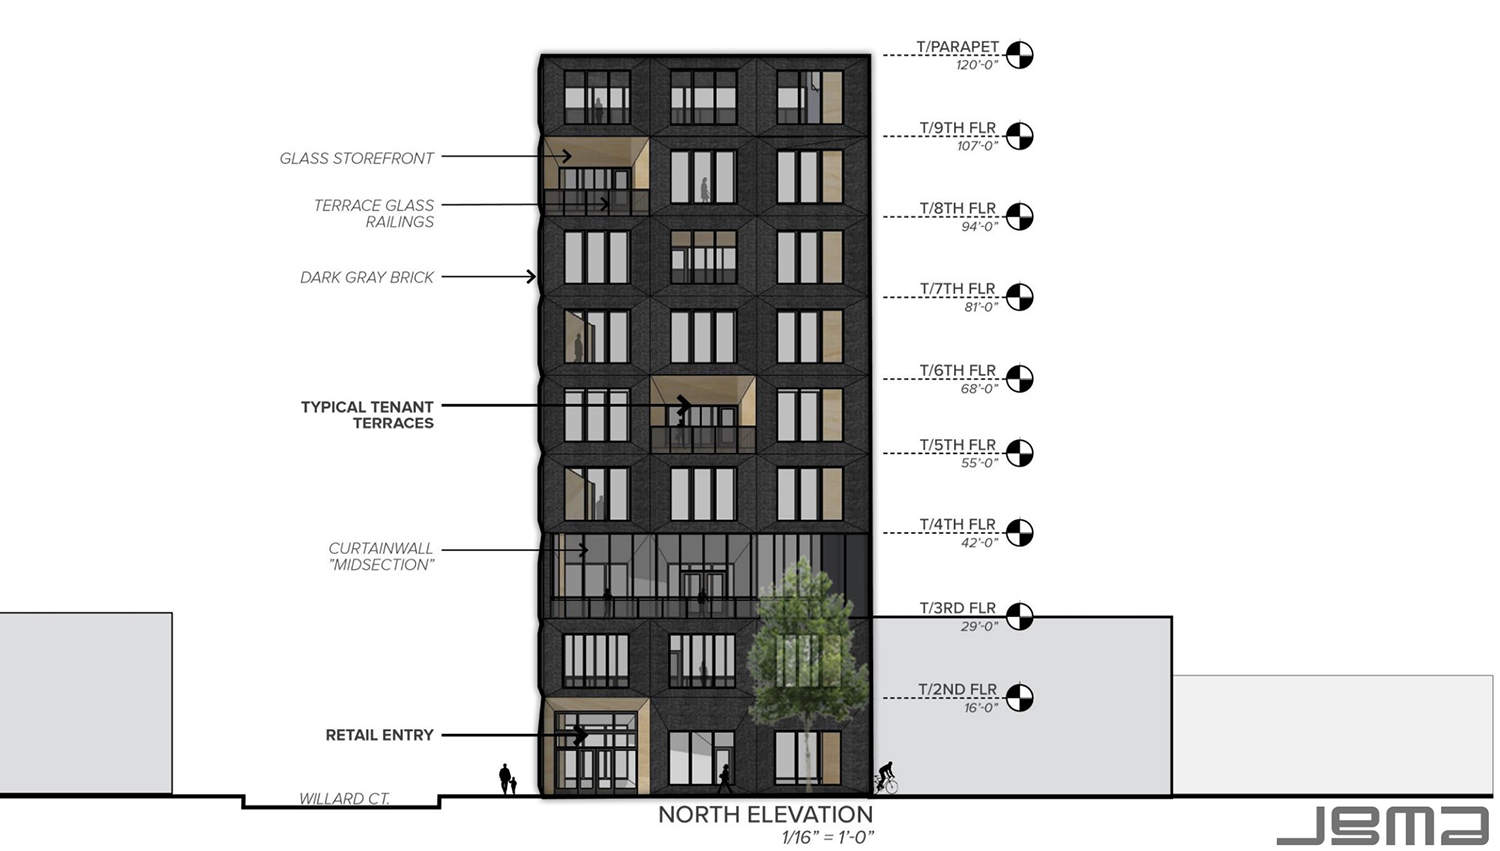 North Elevation for 1229 W Randolph Street. Drawing by JGMA